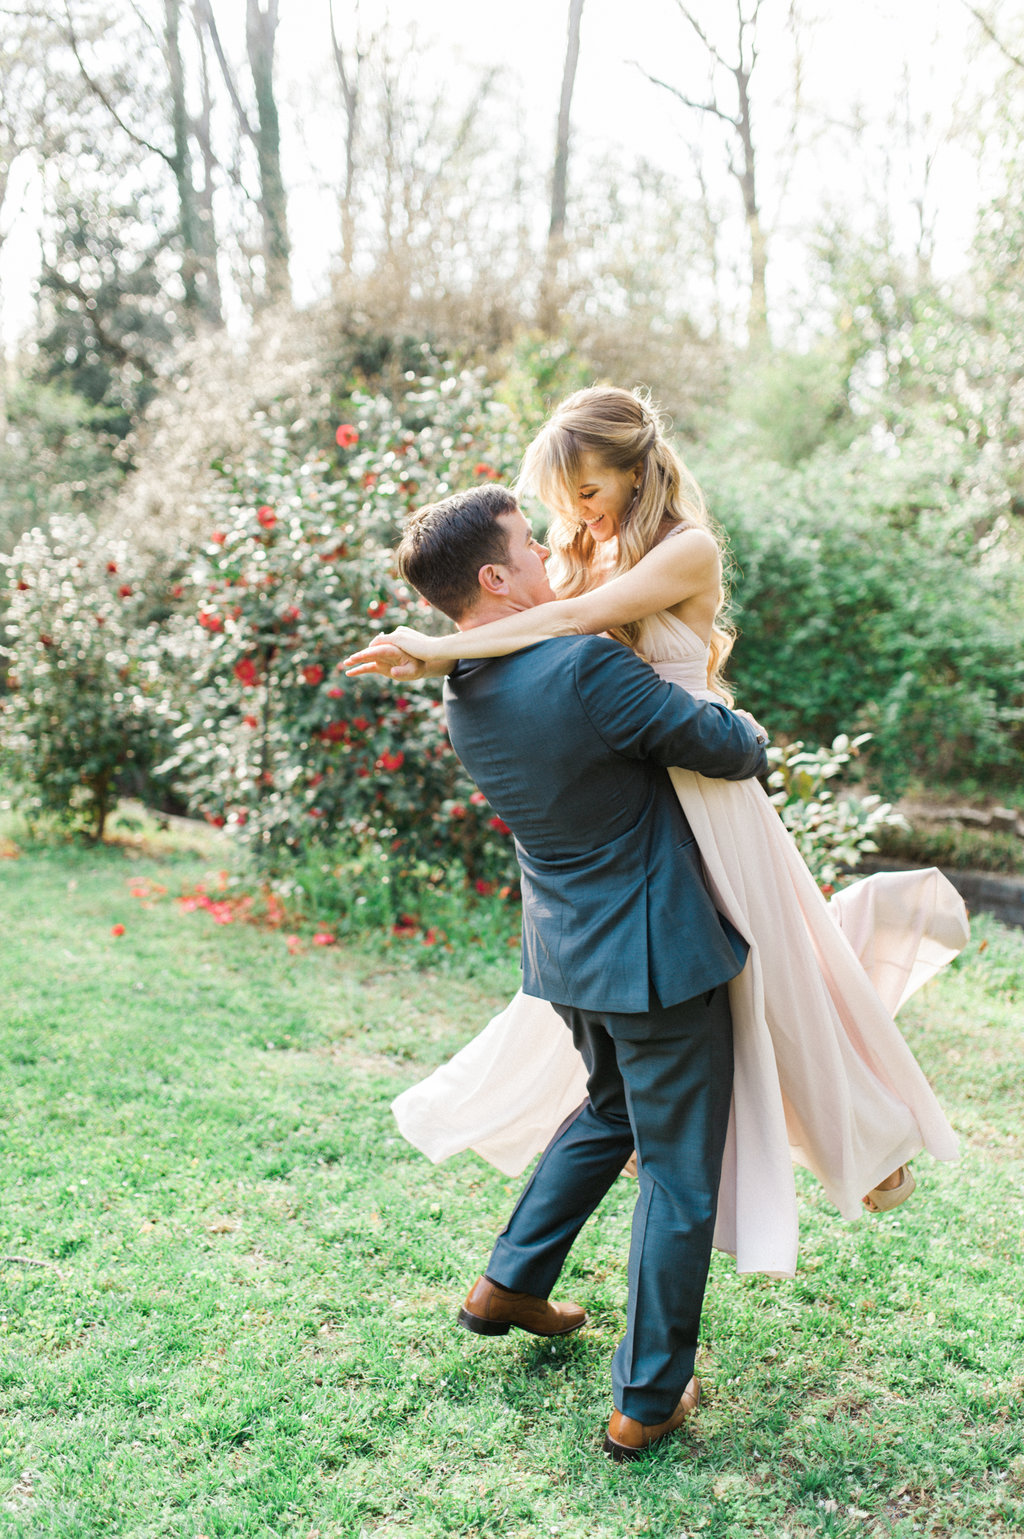 Cator-Woolford-Gardens-Engagement-atlanta-wedding-photographer-hannah-forsberg-2.jpg